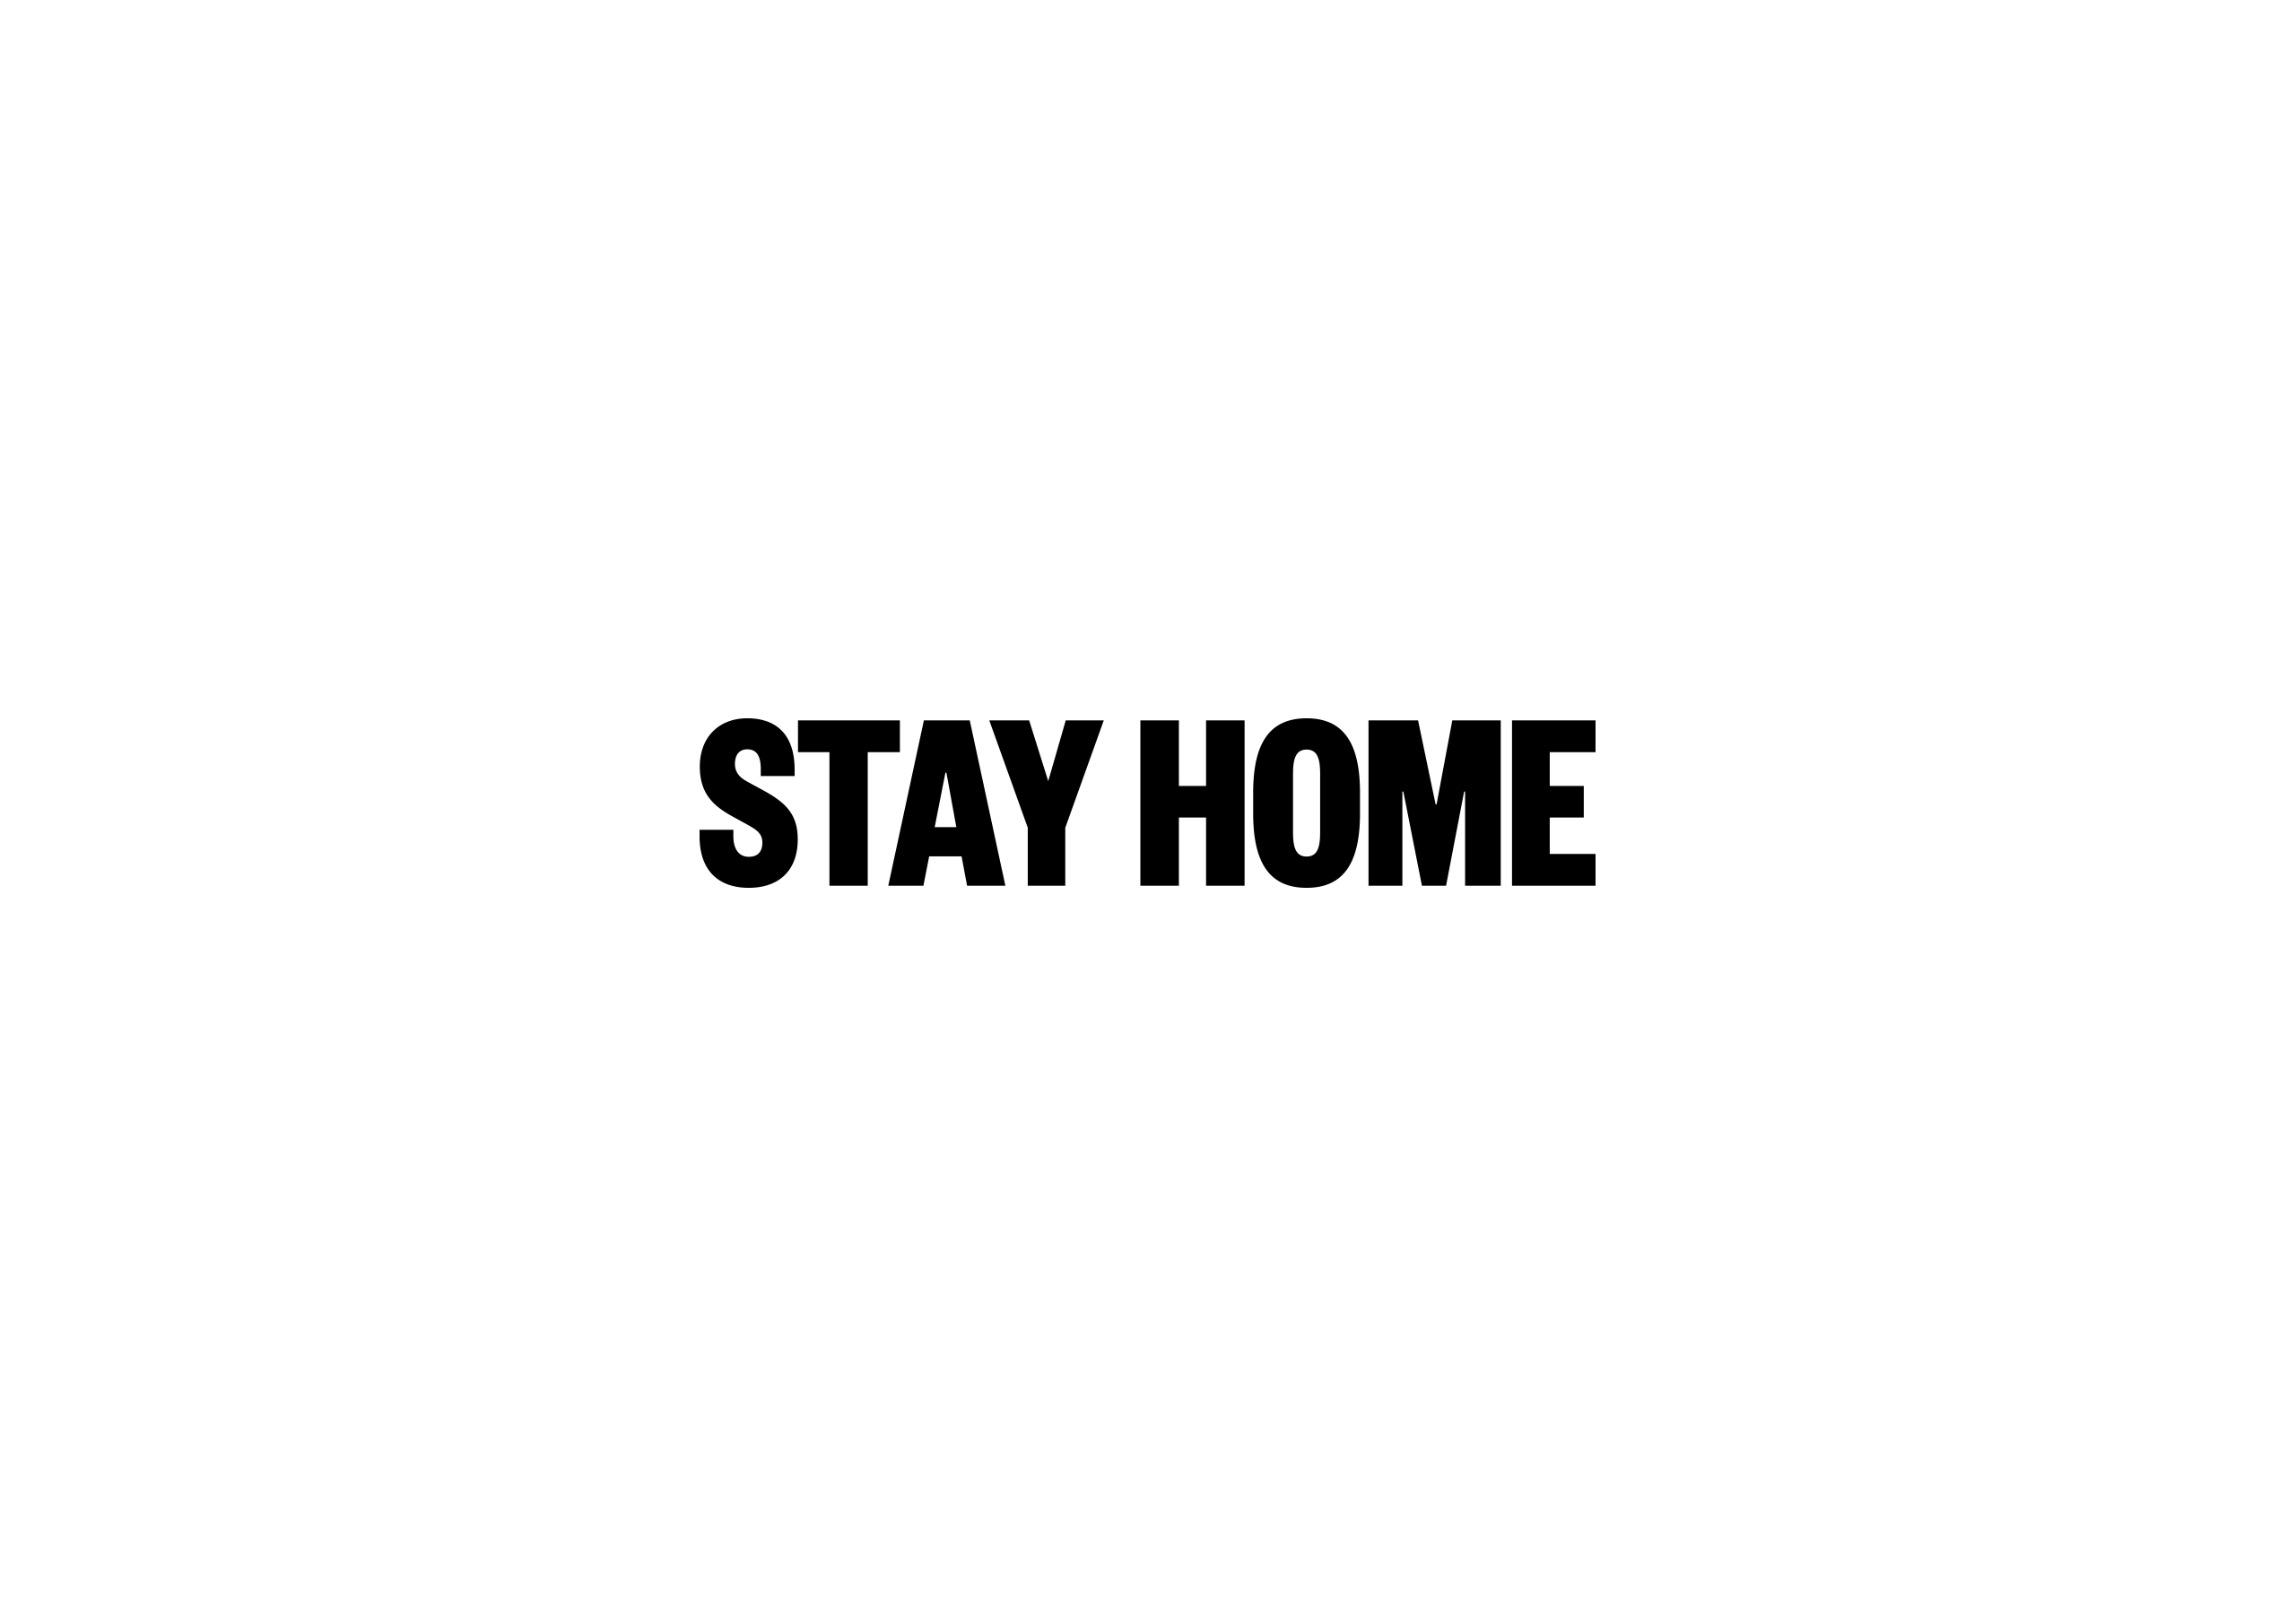 Contra Studio Stay Home #stayhome Poster Graphic design Disseny gràfic